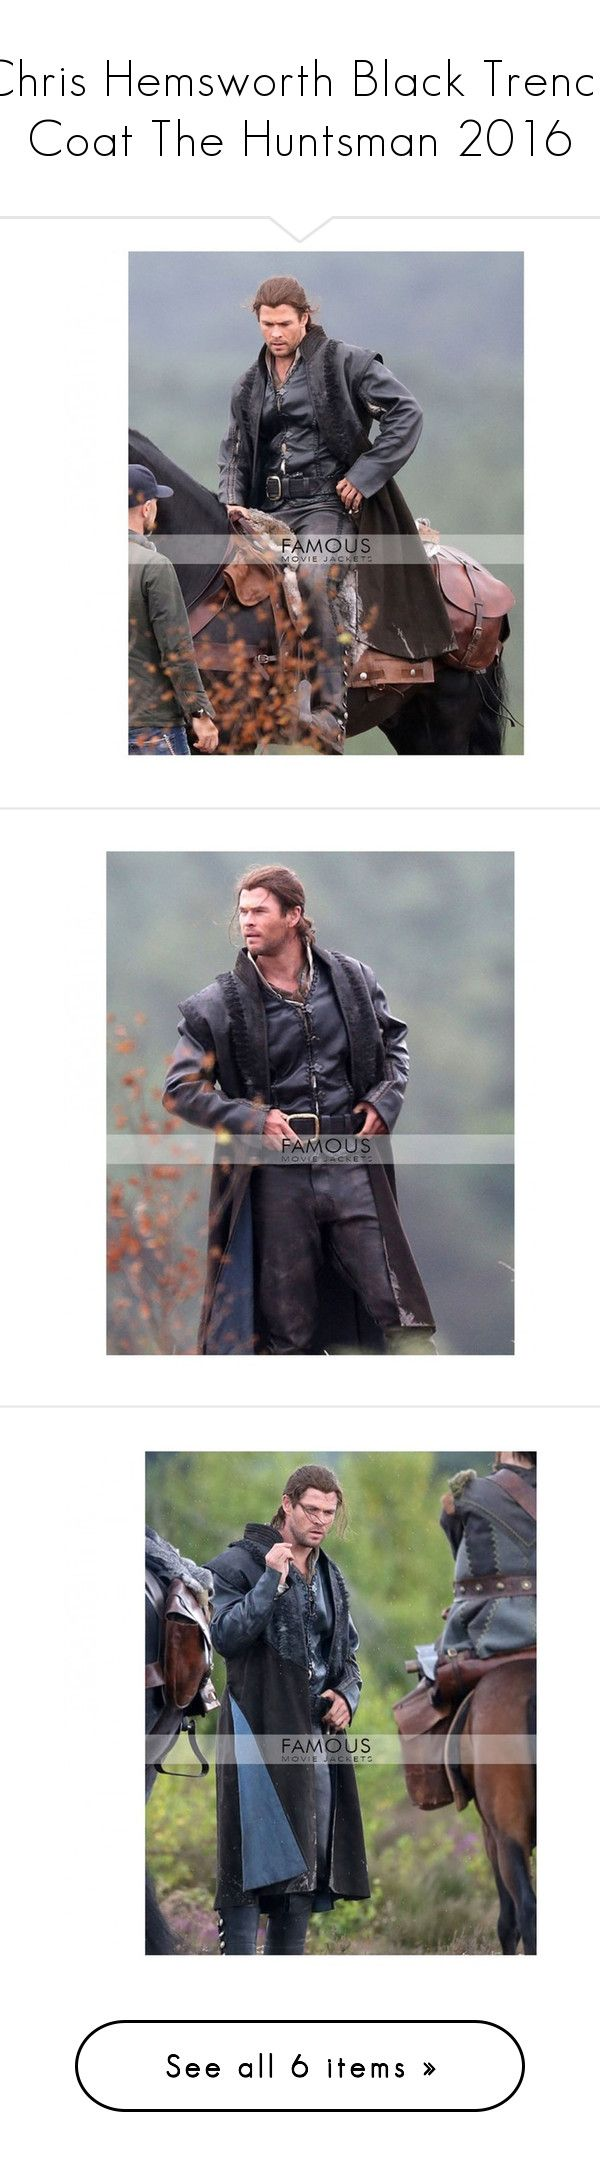 """""""Chris Hemsworth Black Trench Coat The Huntsman 2016"""" by riscillalauryn on Polyvore featuring chris hemsworth, boys, people, outerwear and vests"""